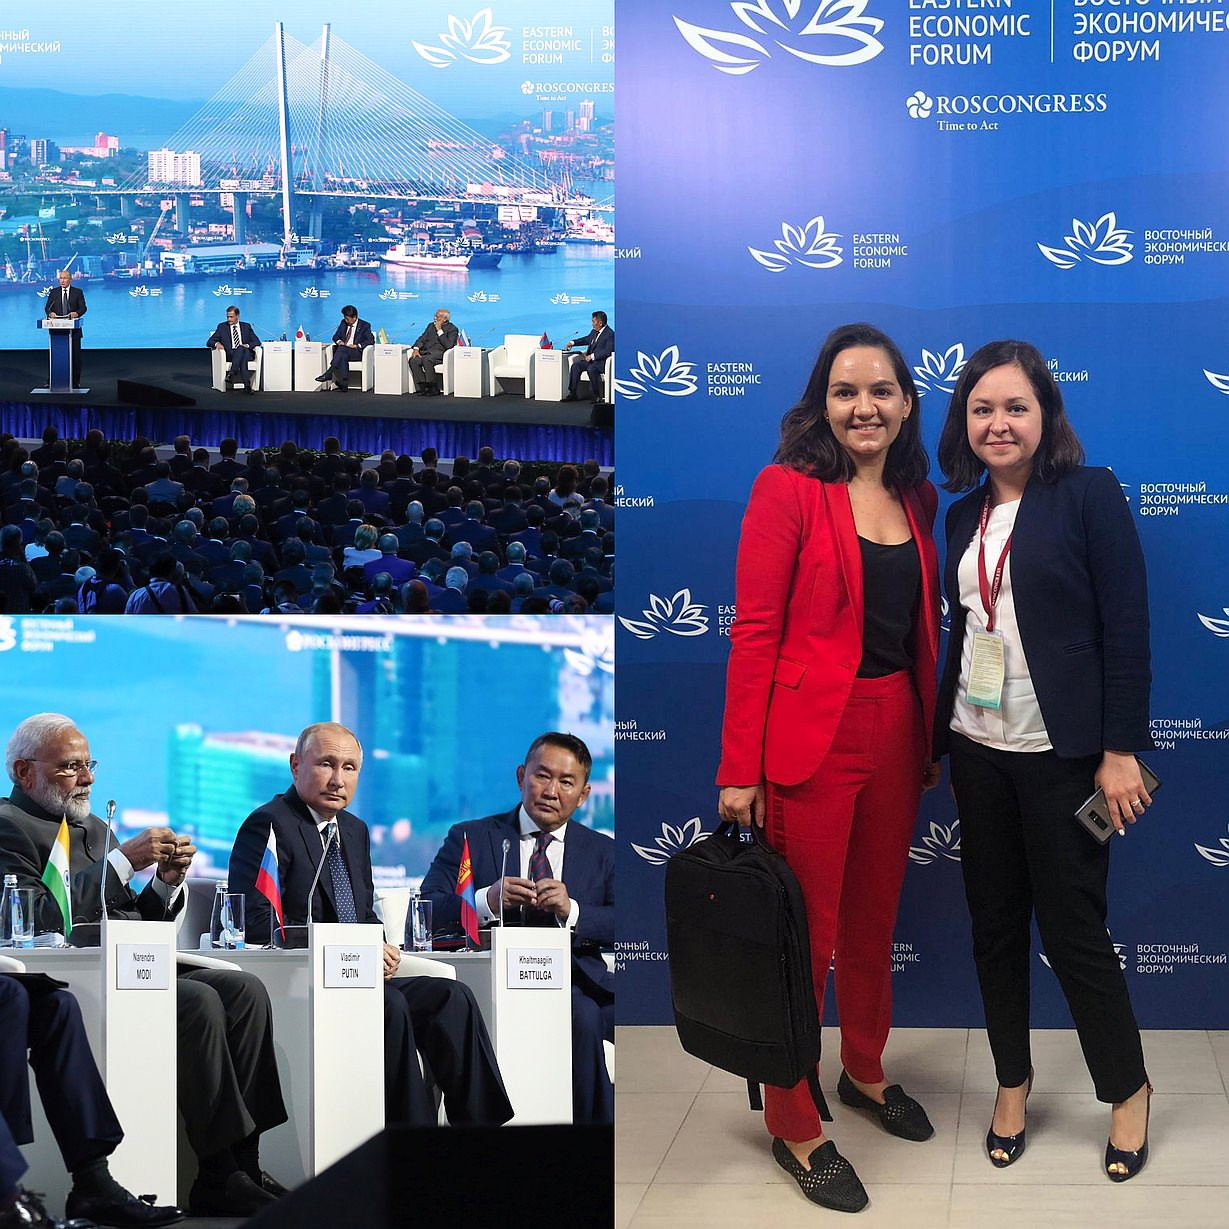 Charltons attended the Eastern Economic Forum 2019